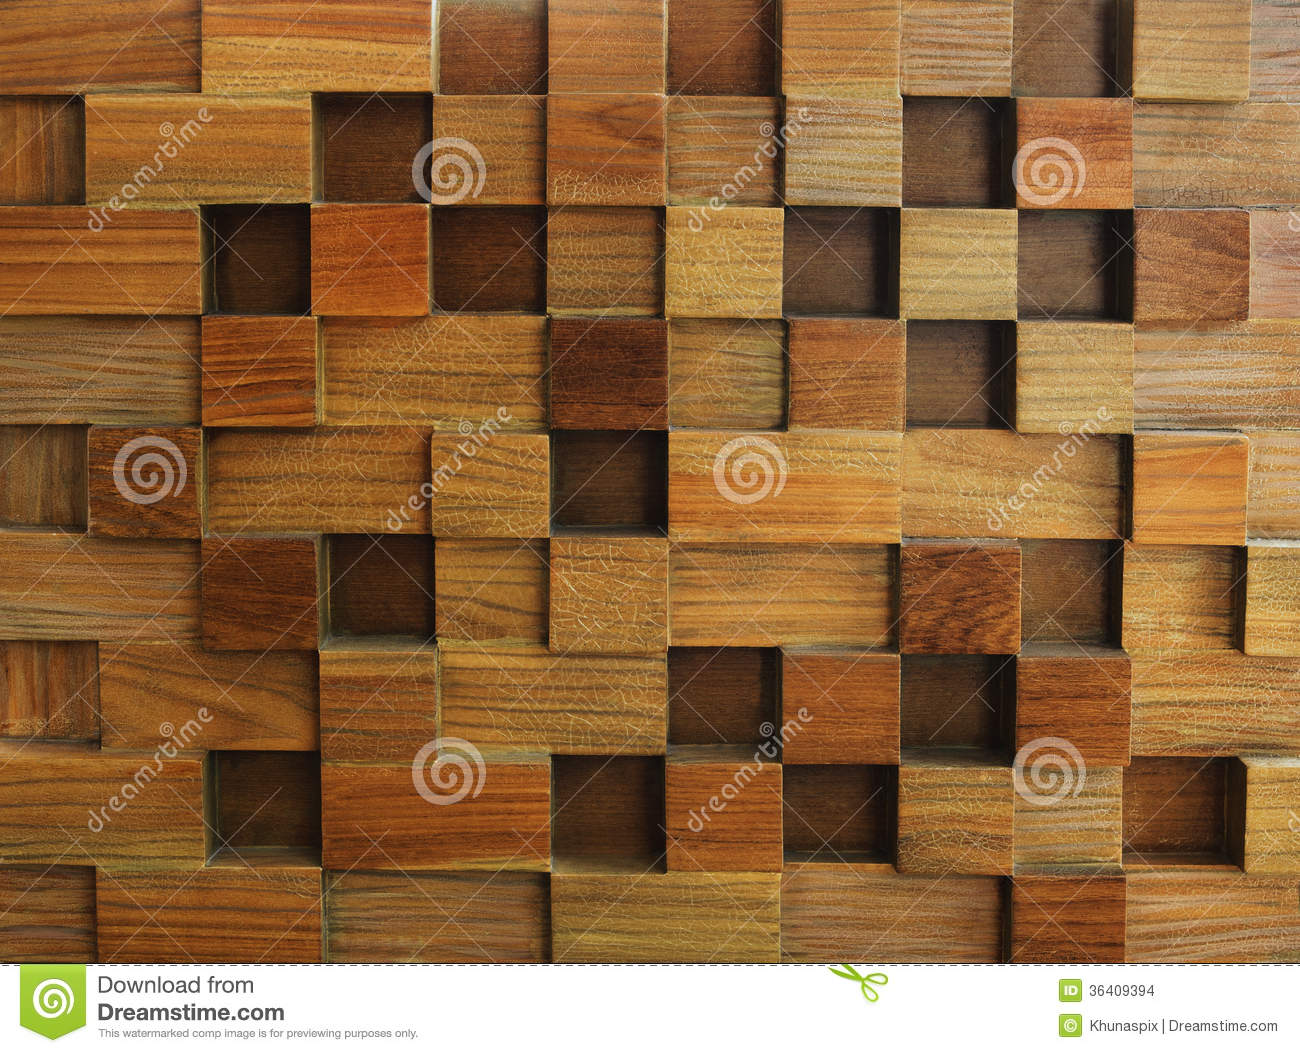 Textured of wood cube background use for multipurpose shape and